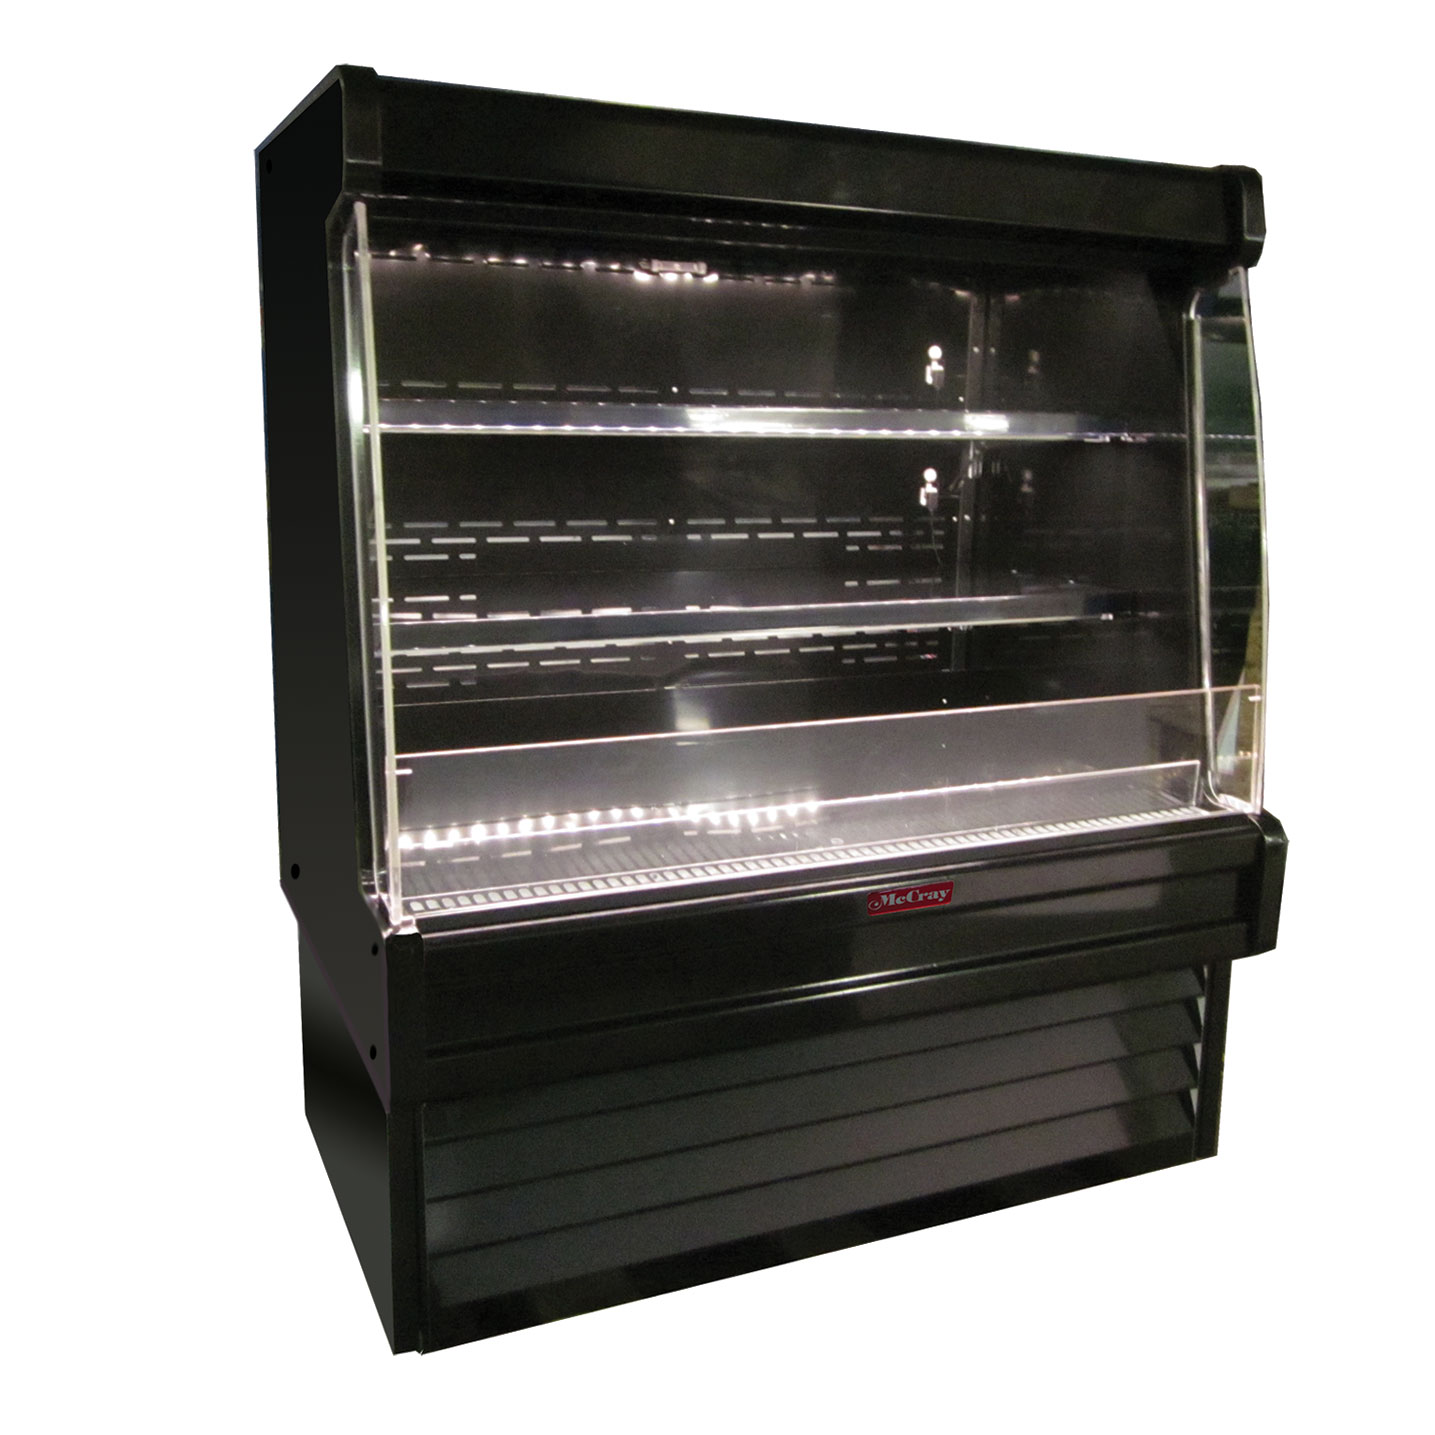 Howard-McCray R-OP35E-5L-S-LED display case, produce